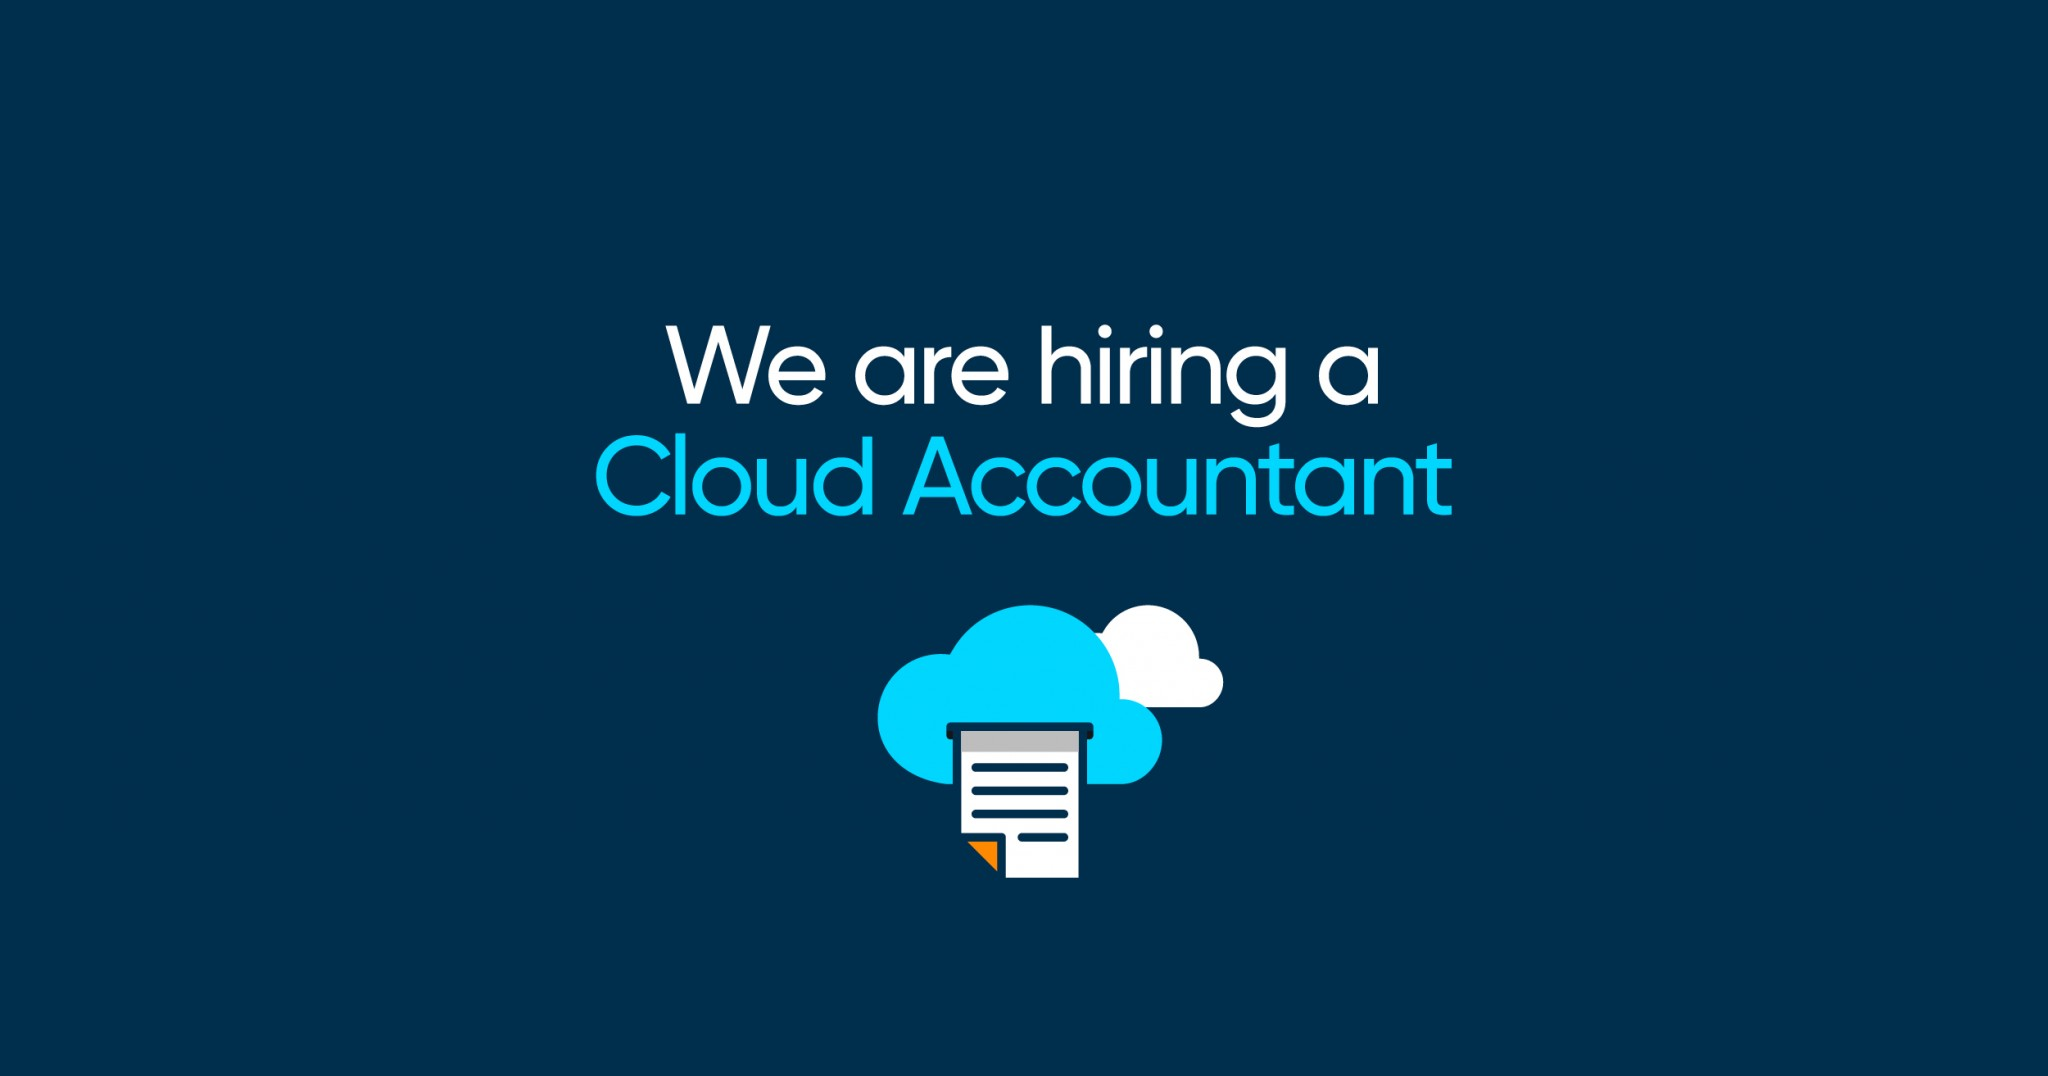 We're looking for a Cloud Accountant to join our team!